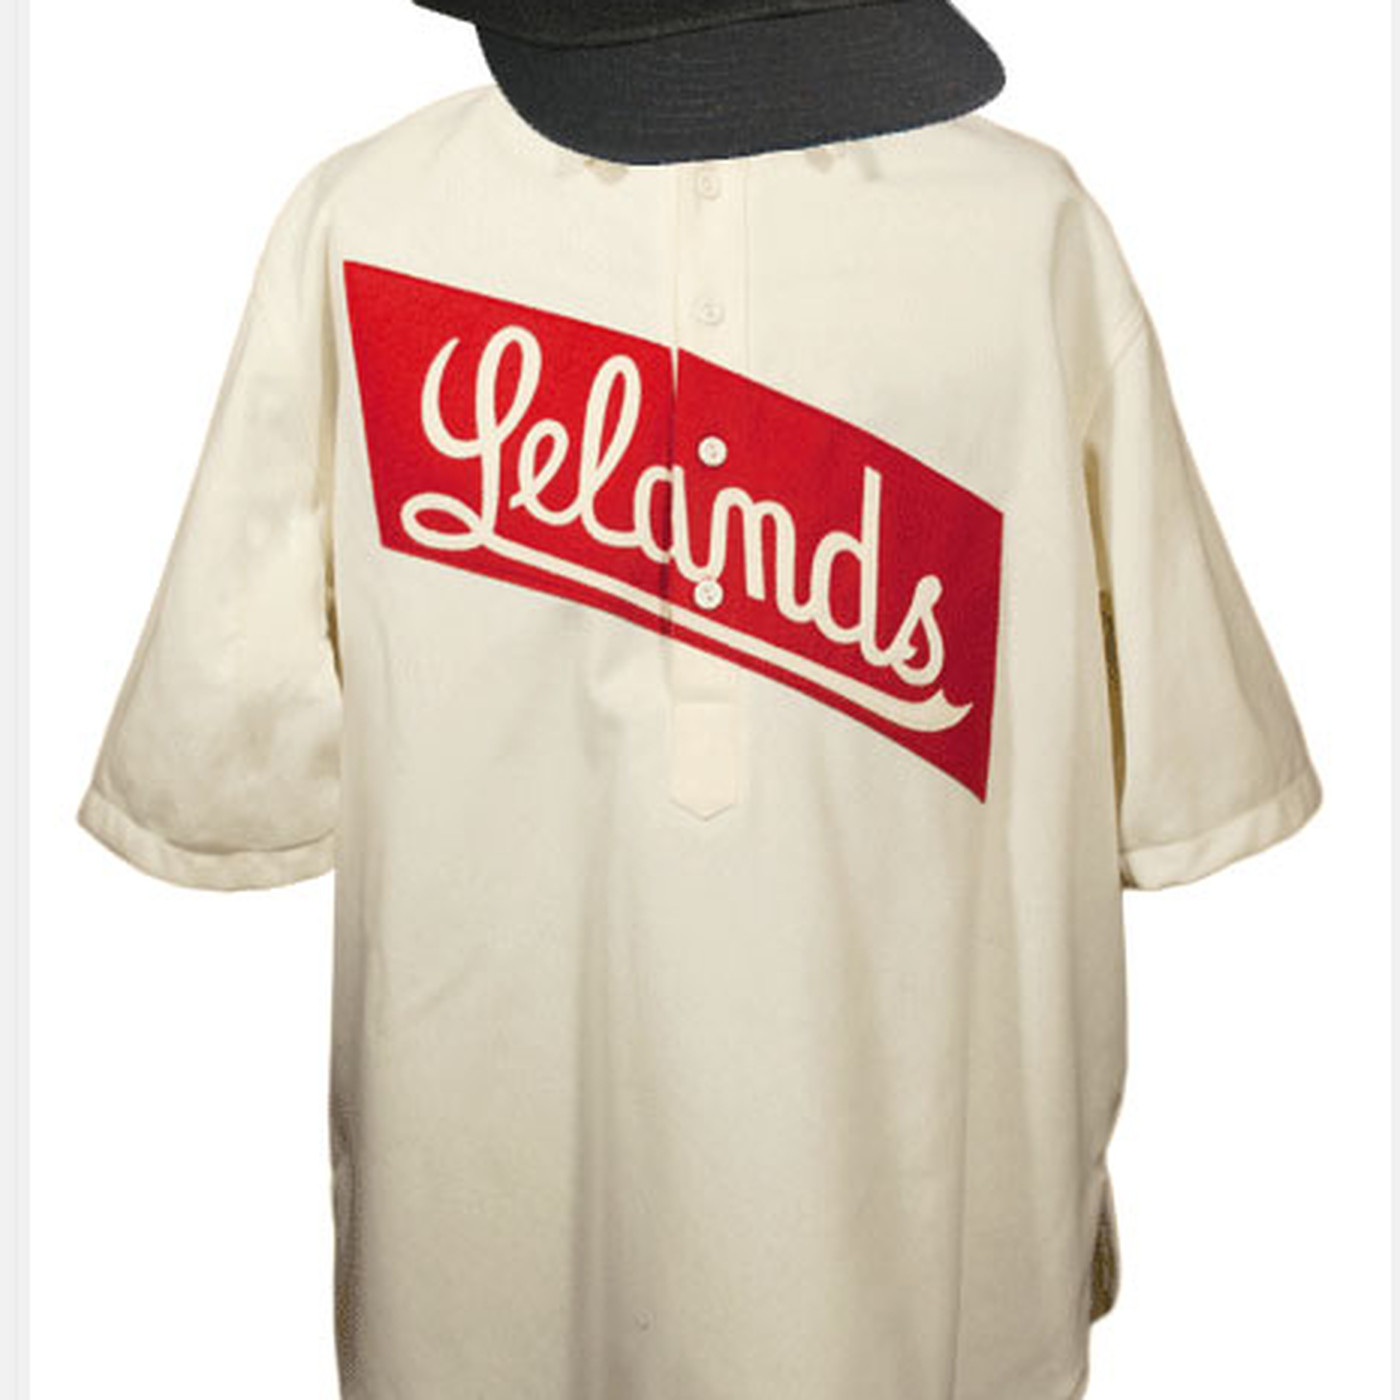 7e7d1e151 The story behind those uniforms Cubs will wear tonight vs. Pirates ...